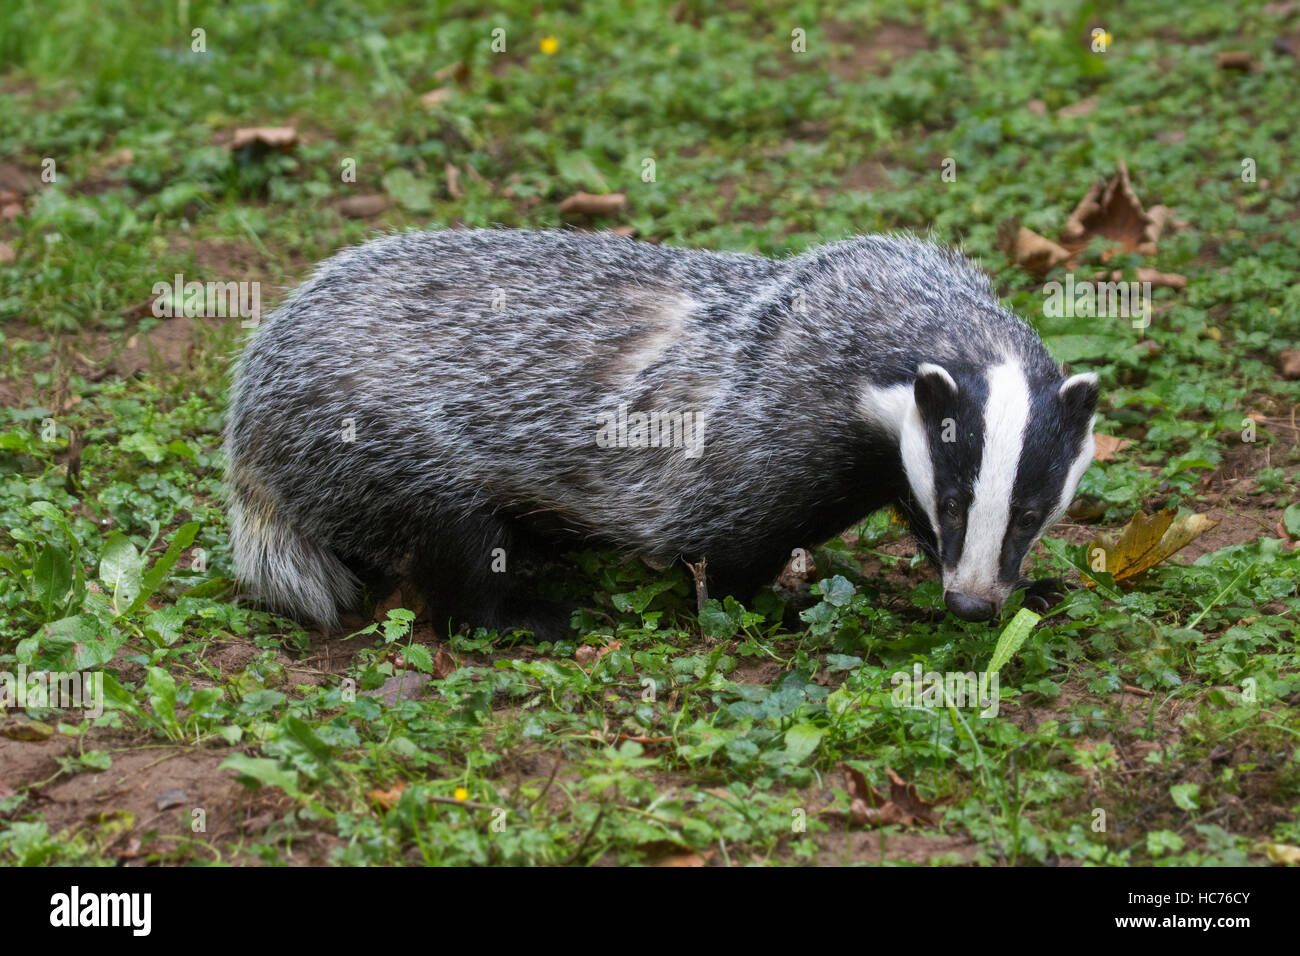 European badger (Meles meles) foraging in grassland during the daytime - Stock Image